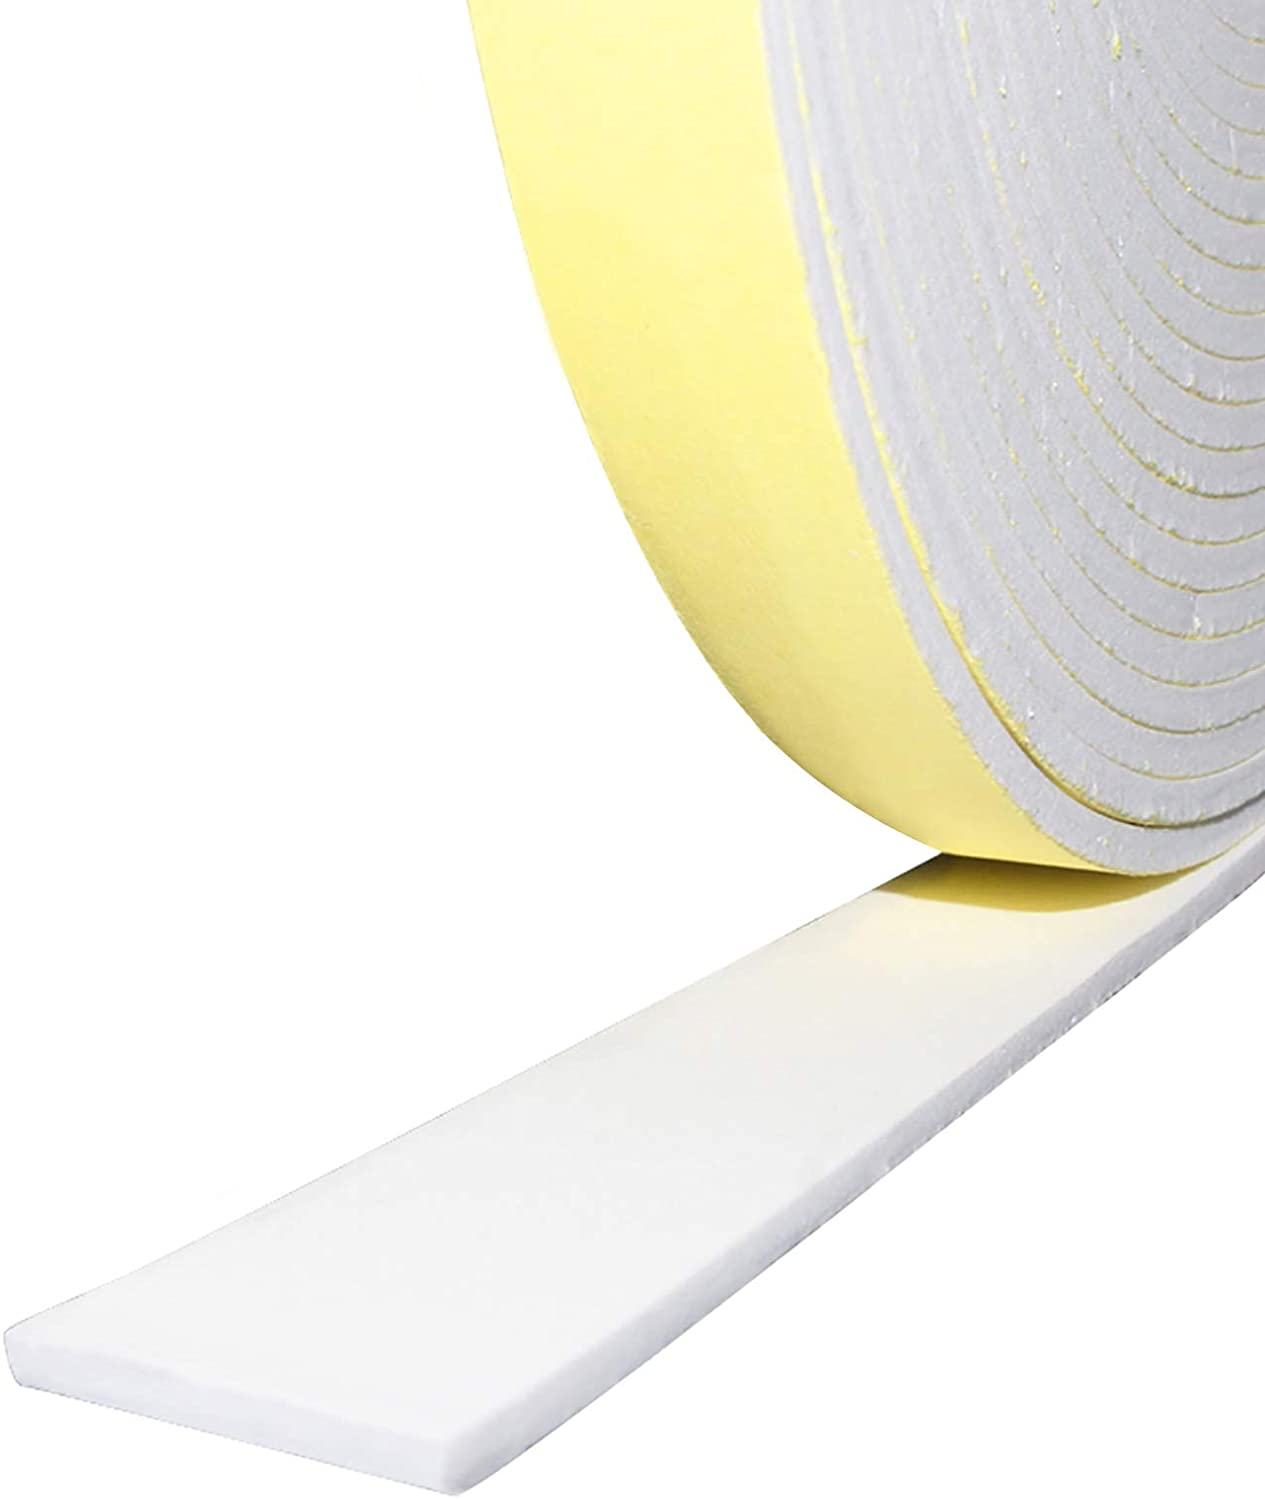 Foam Insulation Tape OFFicial mail order Adhesive Weather Seal Stripping Doors New popularity for